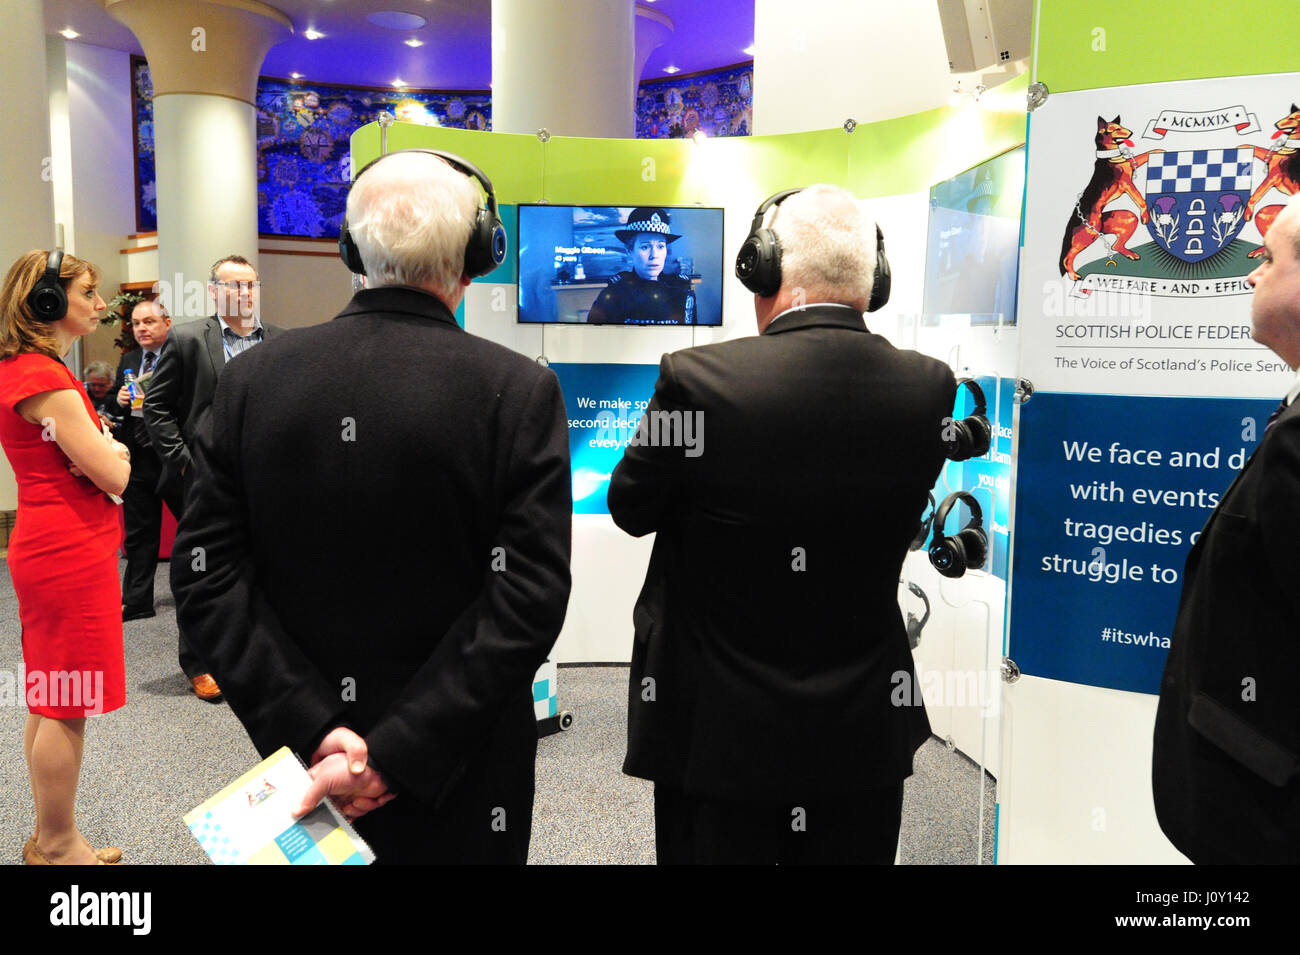 Scottish Conservative Party conference attendees on the Scottish Police Federation stand listen to sample police - Stock Image